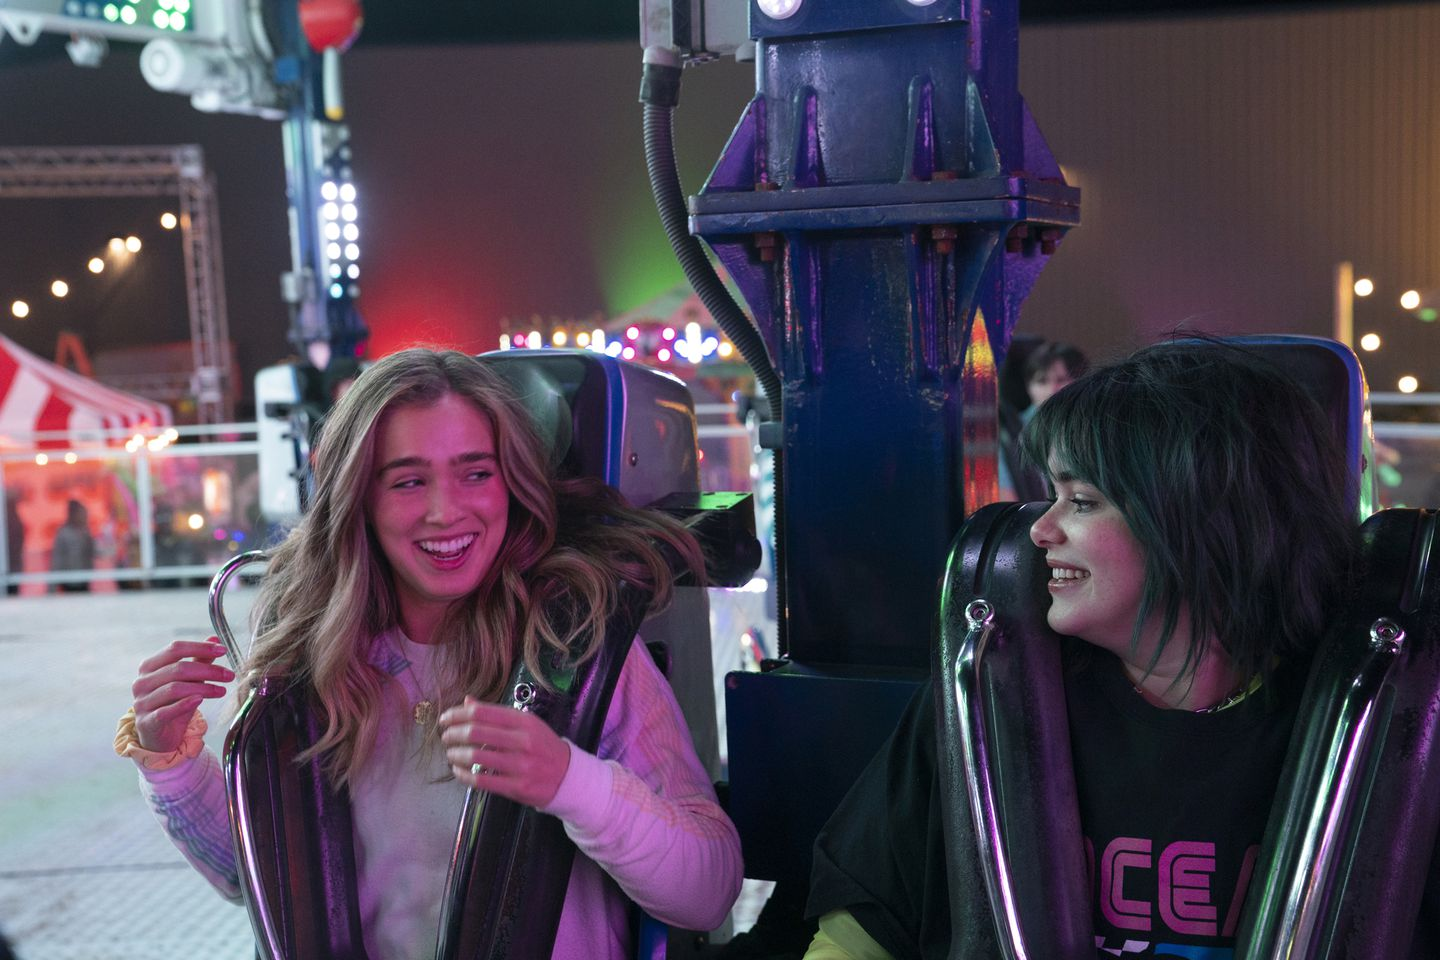 17 year old friends, Veronica (left) and Bailey (right) are at sitting side by side on a fairground ride that spins around. They are looking at each other and laughing, illuminated by bright coloured lights in the background.